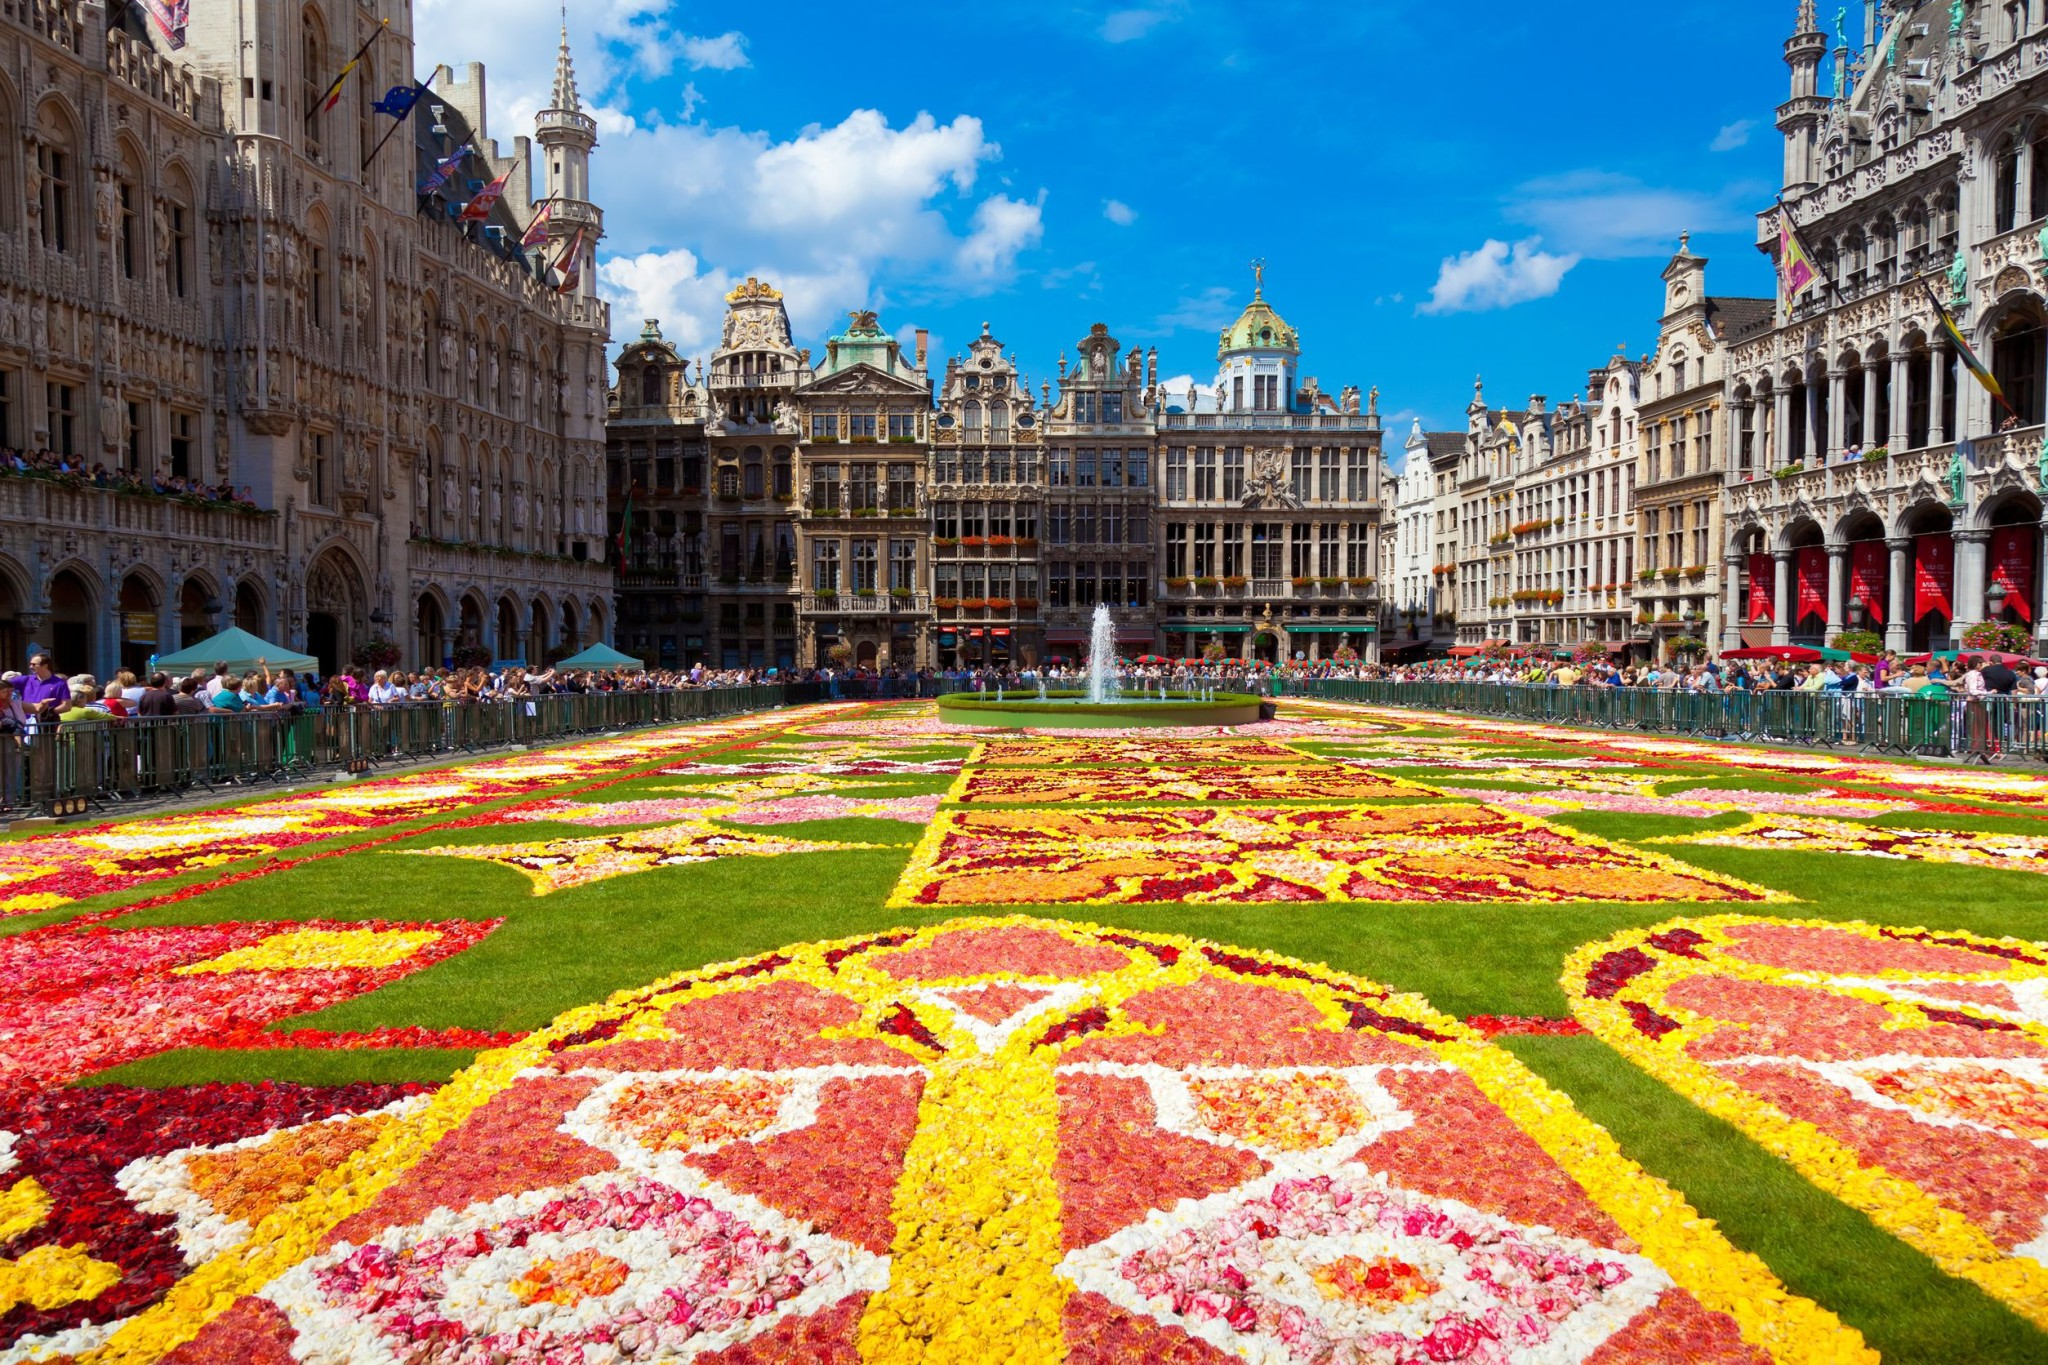 Floral carpet on the Grand Place Square, Brussels Belgium